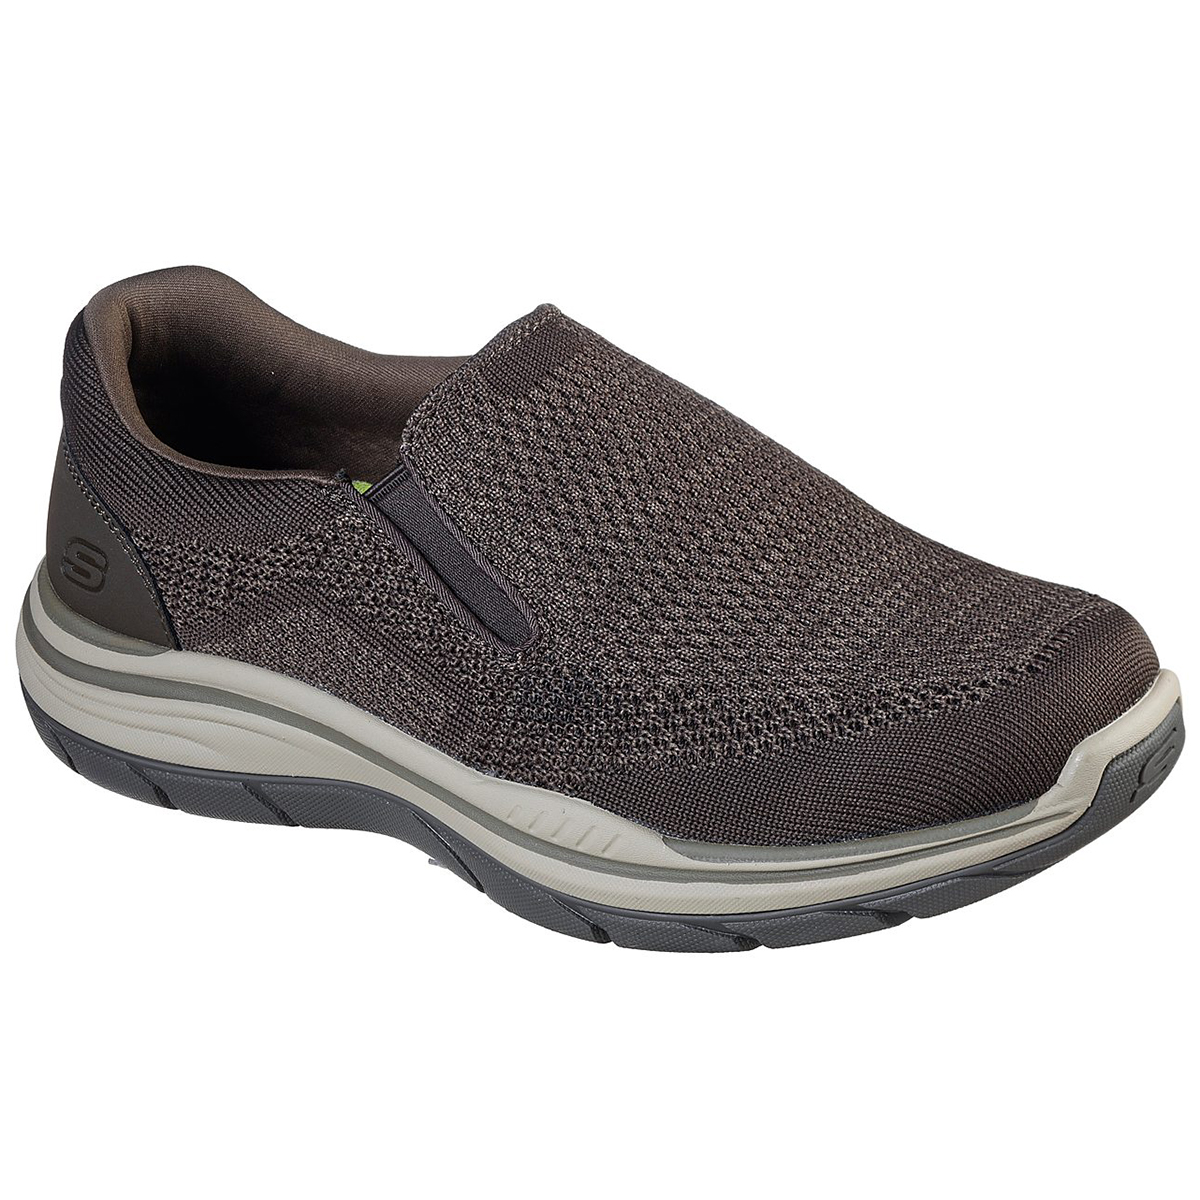 Skechers Men's Relaxed Fit: Expected 2.0 - Arago Shoe, Extra Wide - Green, 9